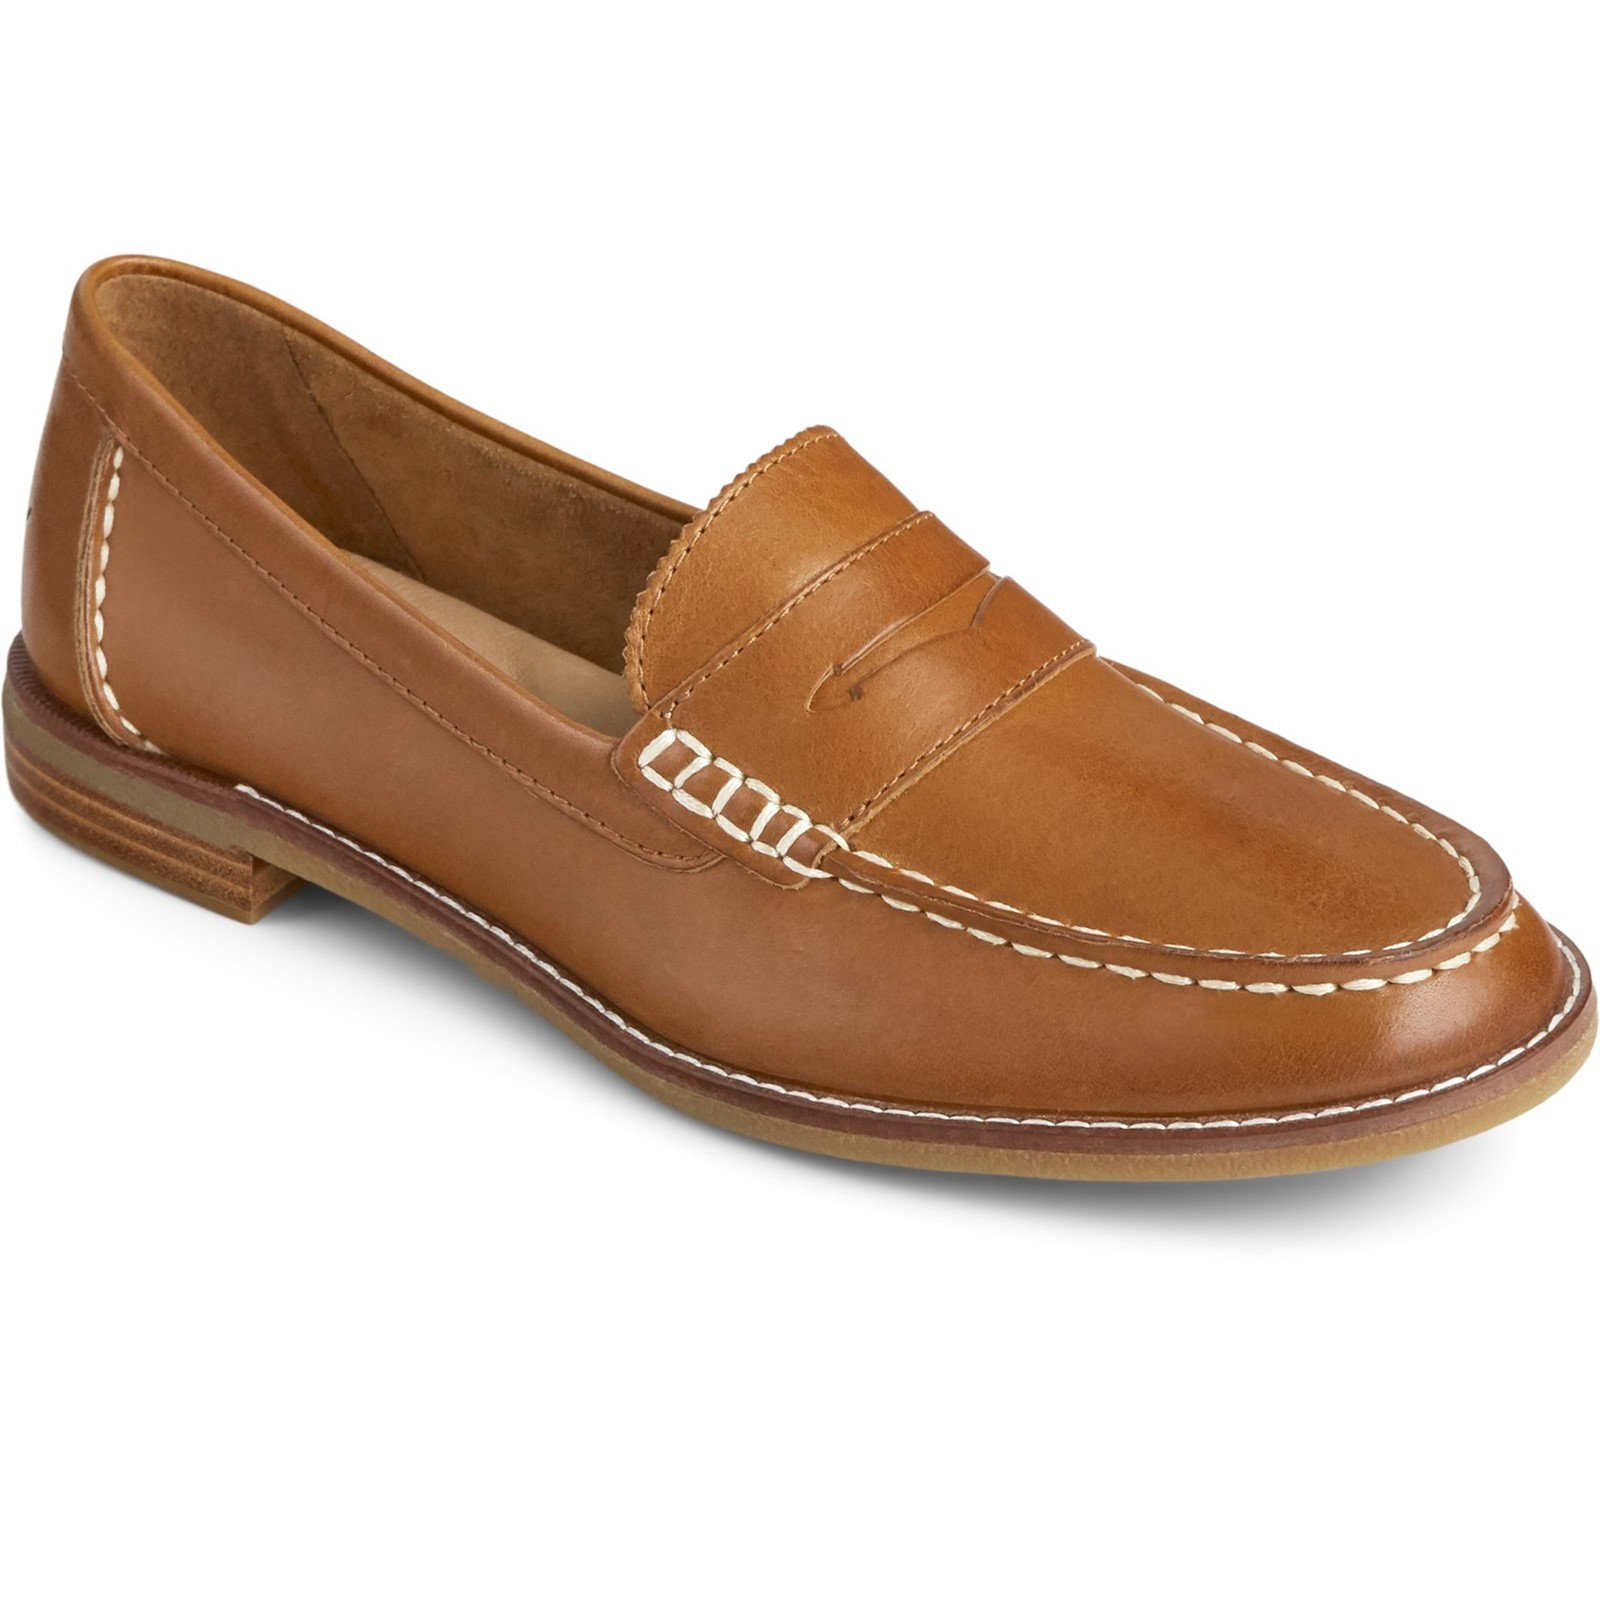 Sperry Women's Seaport Penny Loafer Various Colours 32403 - Tan 7